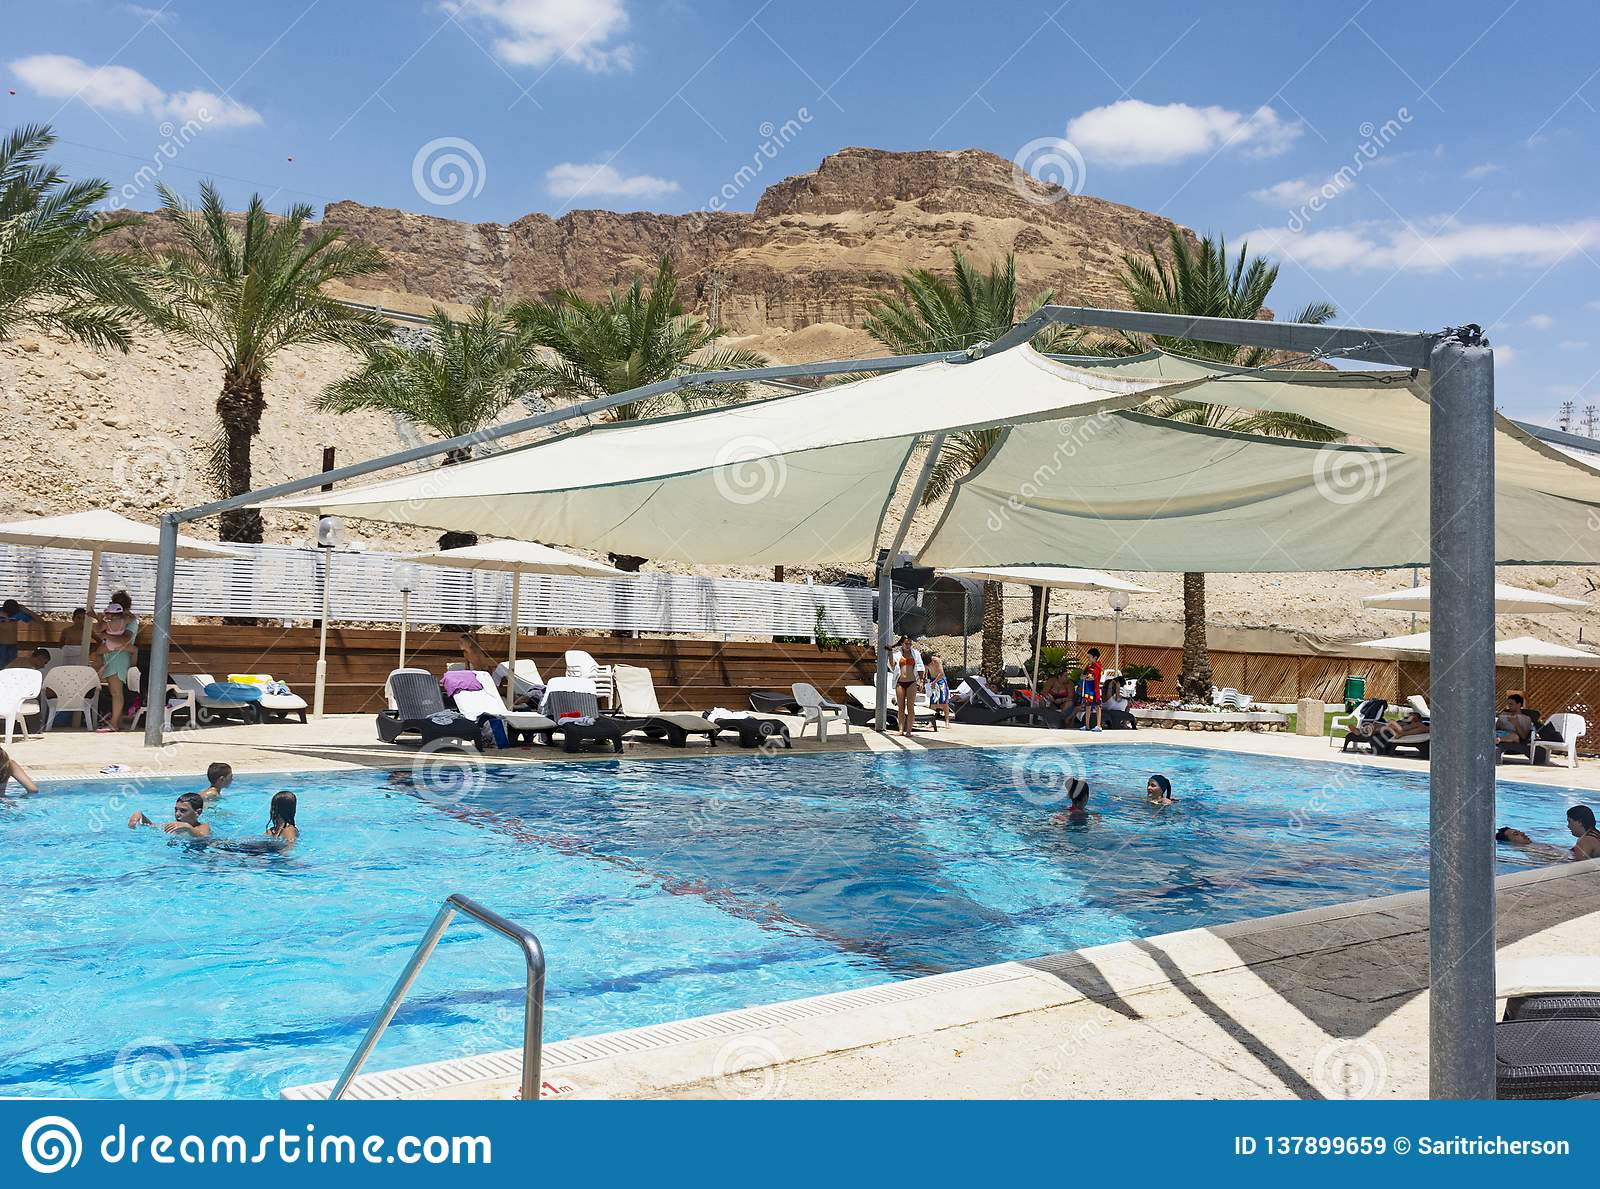 Outdoor Swimming Pool at a Dead Sea Resort Hotel